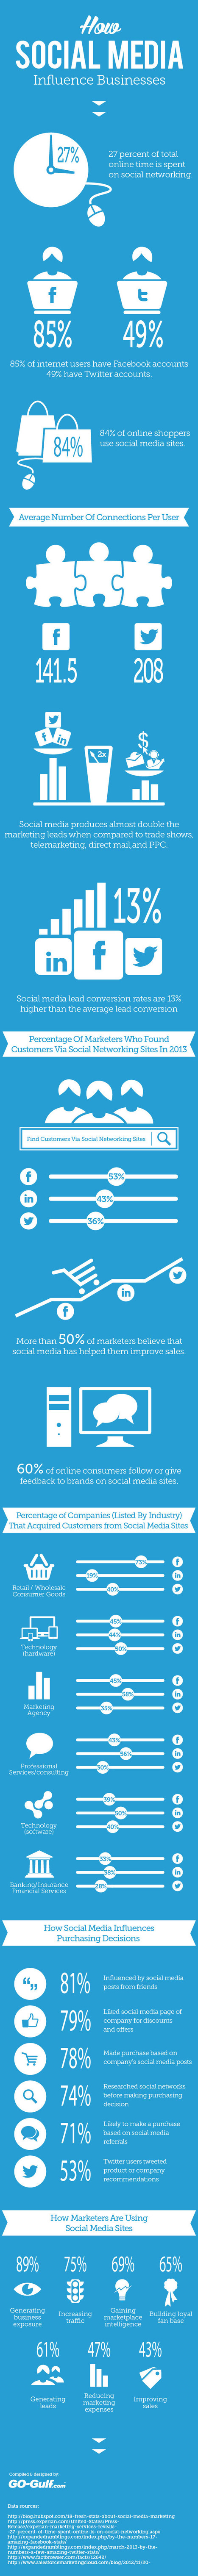 How Social Media Influence Businesses | Great #Infographic from Visual.ly | Social Marketing Revolution | Scoop.it